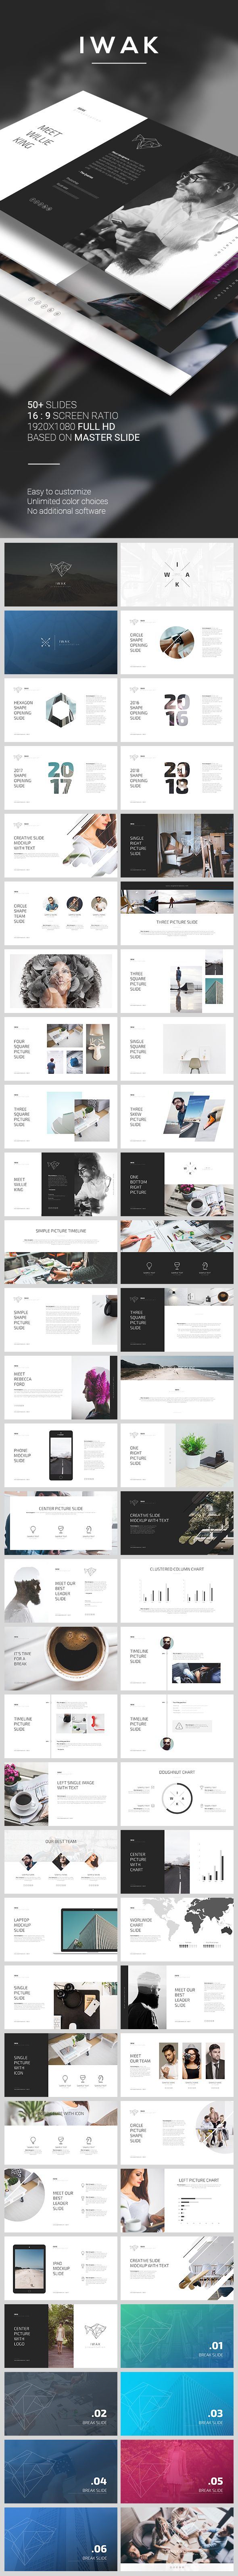 IWAK PowerPoint Template (PowerPoint Templates)